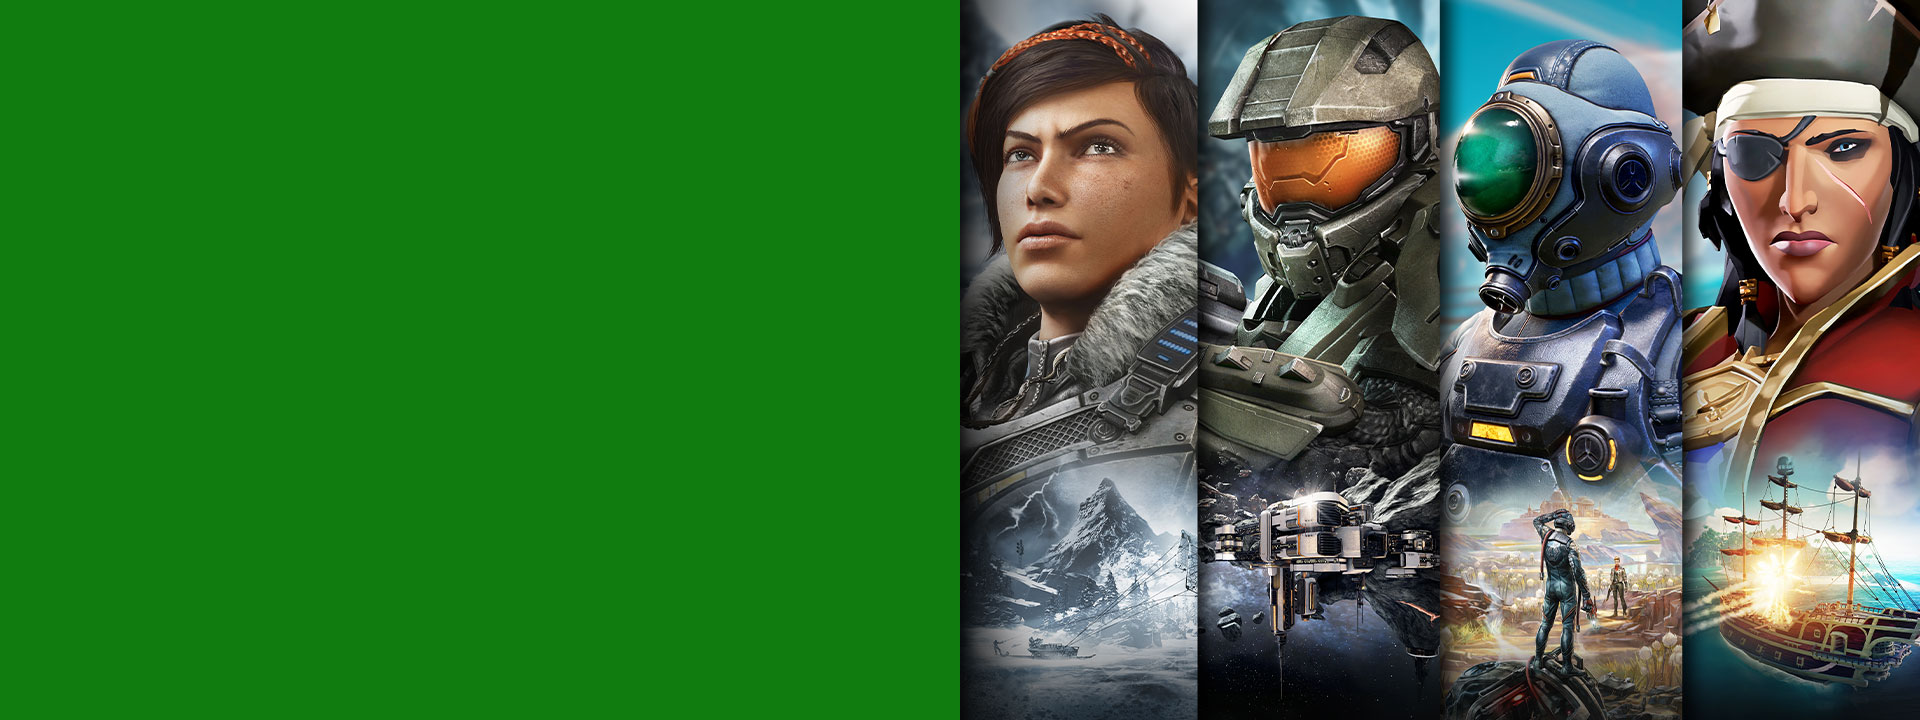 Xbox Game Pass-spillfigurer fra Gears 5, Halo, The Outer Worlds og Sea of Thieves.